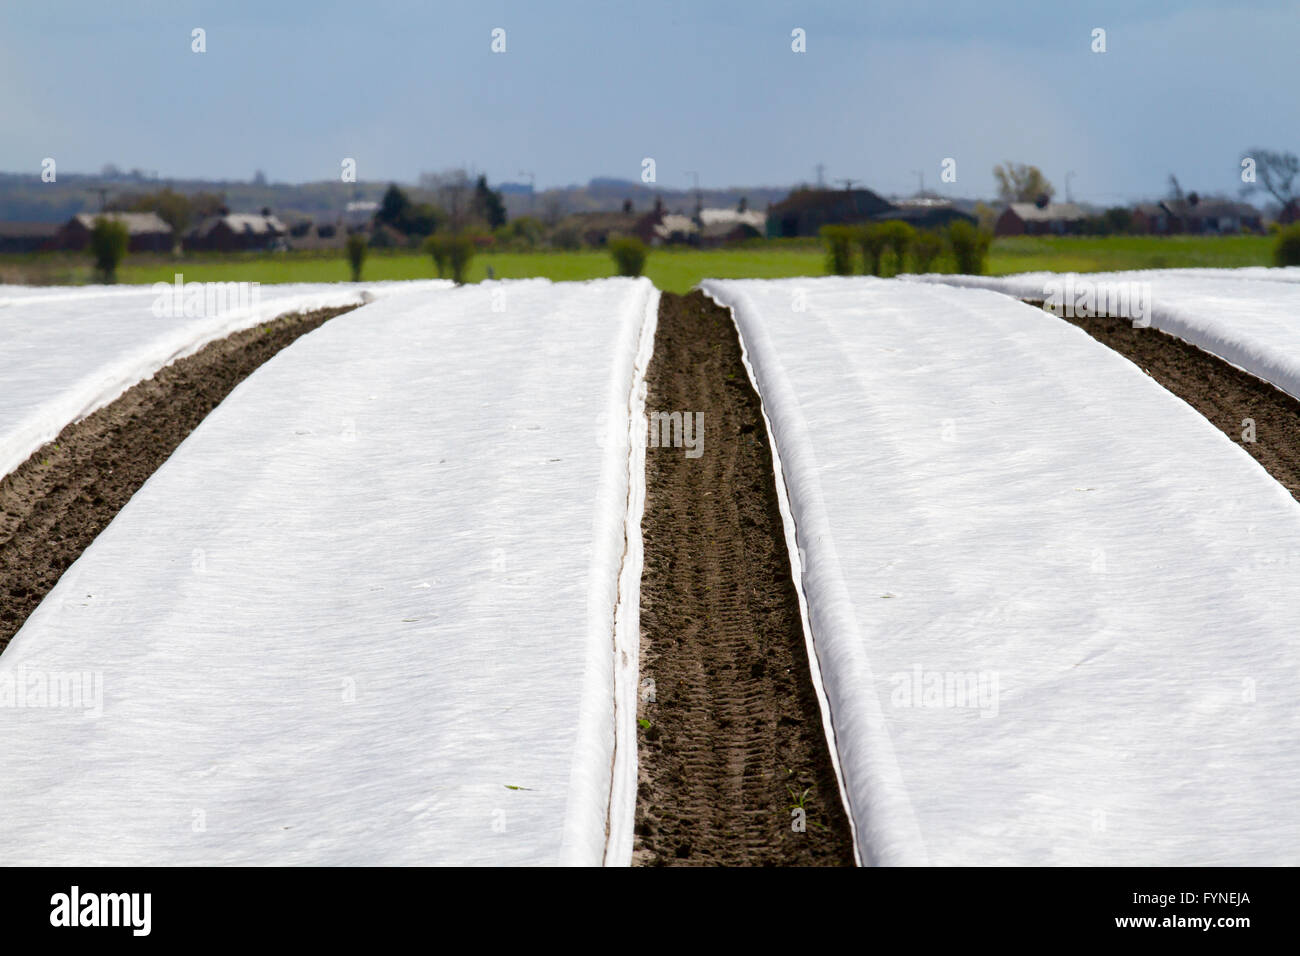 Using satellite navigation systems during planting and seeding using a  seeder/planter with a tractor.  Field machines - Stock Image